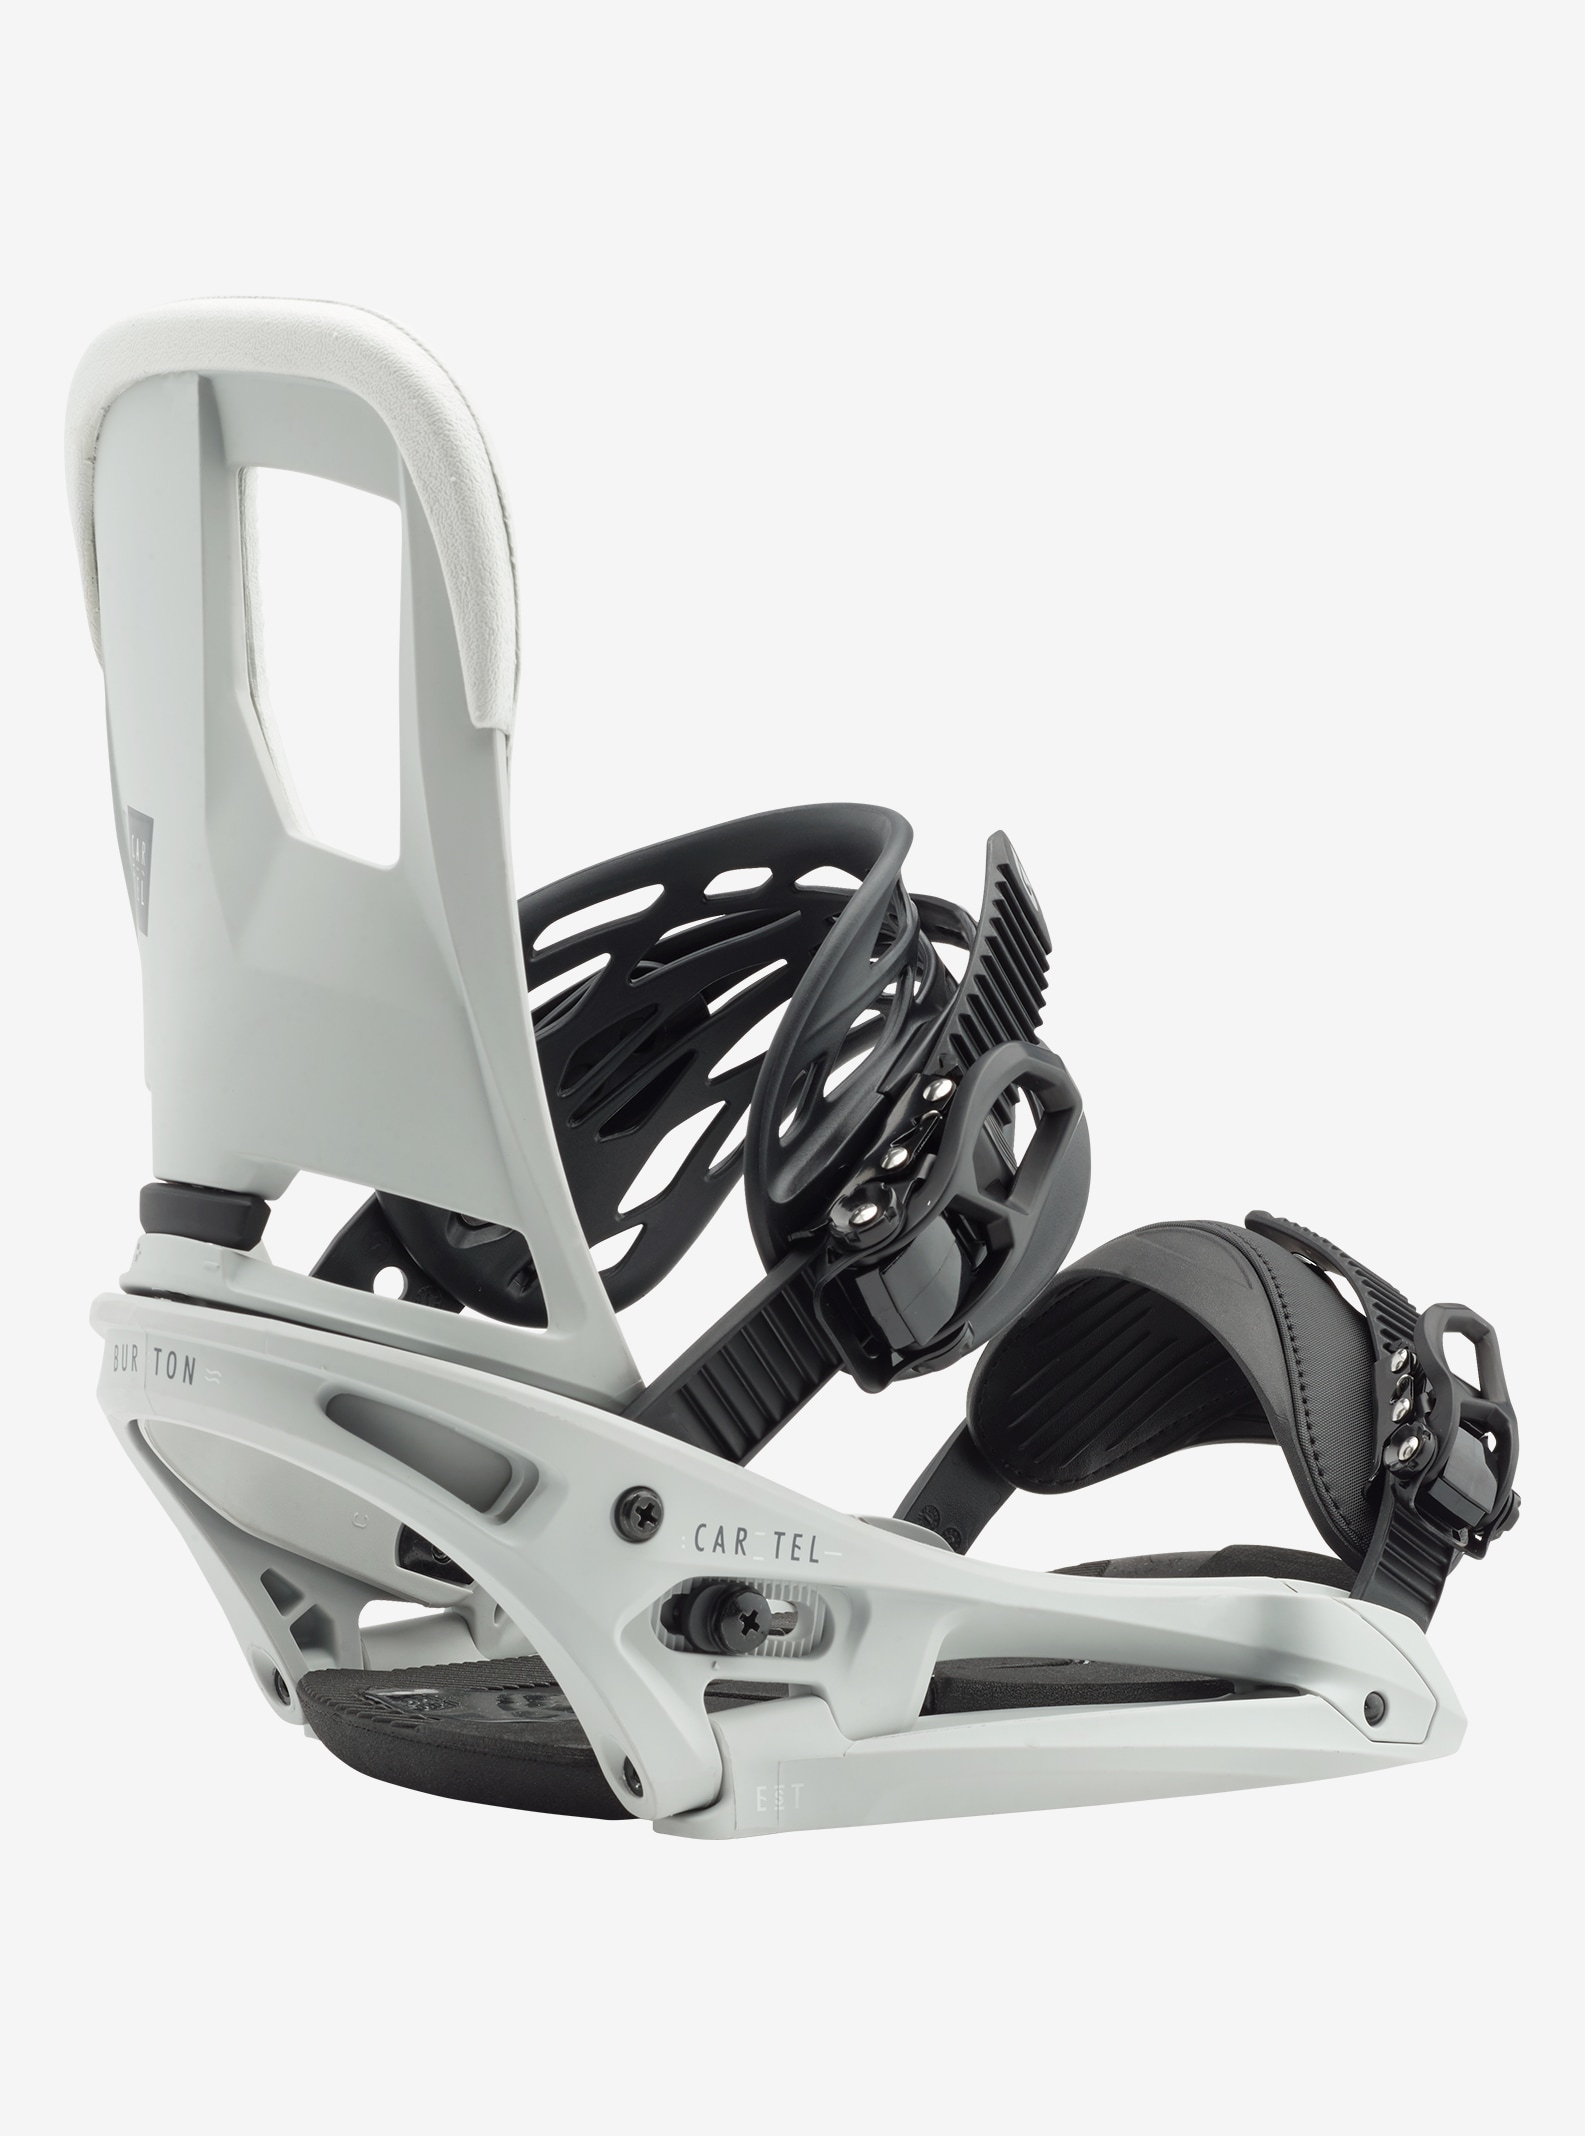 Men's Burton Cartel EST Snowboard Binding shown in Primed